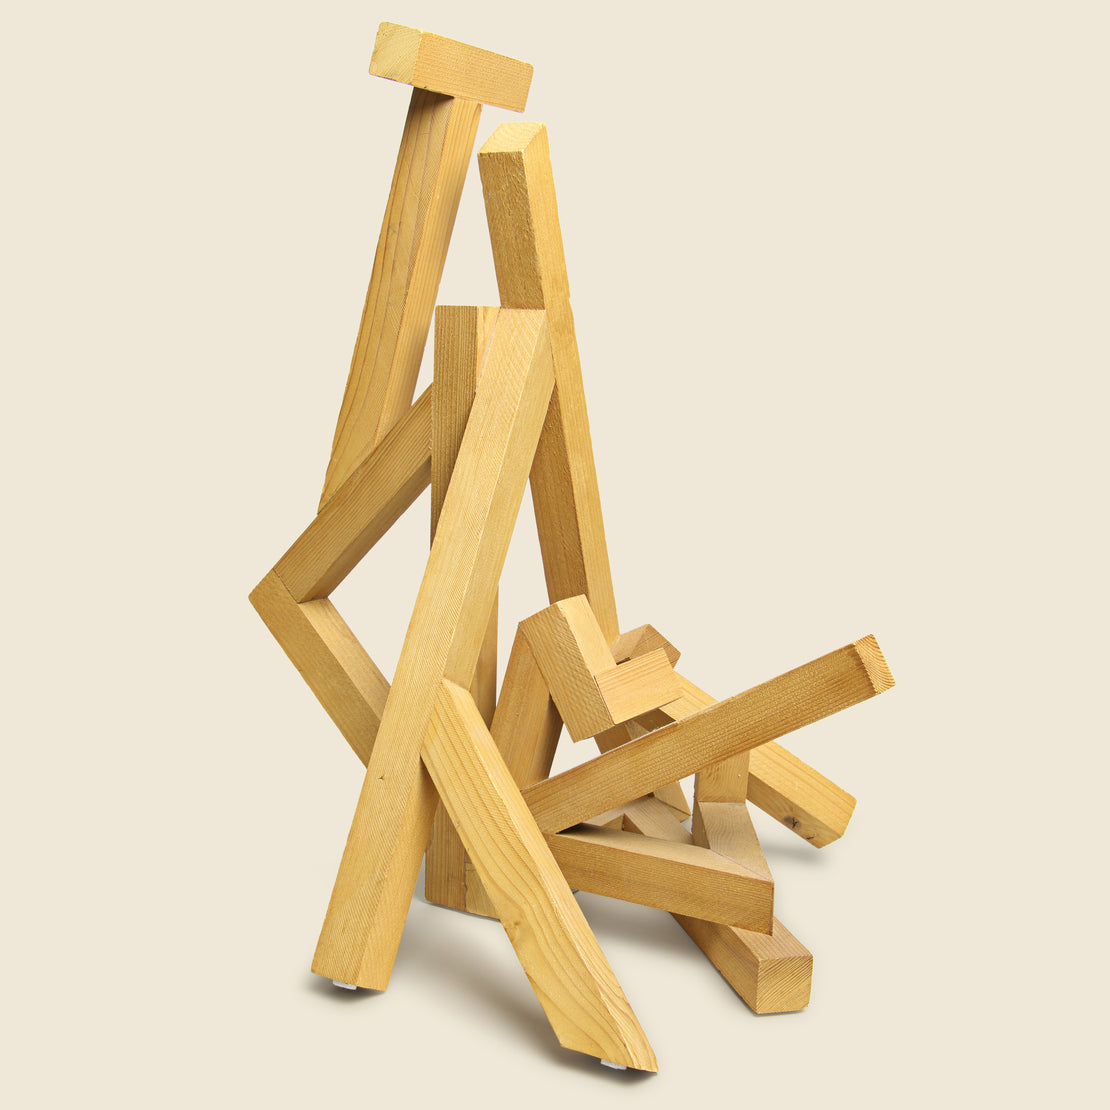 Vintage Wooden Geometric Sculpture